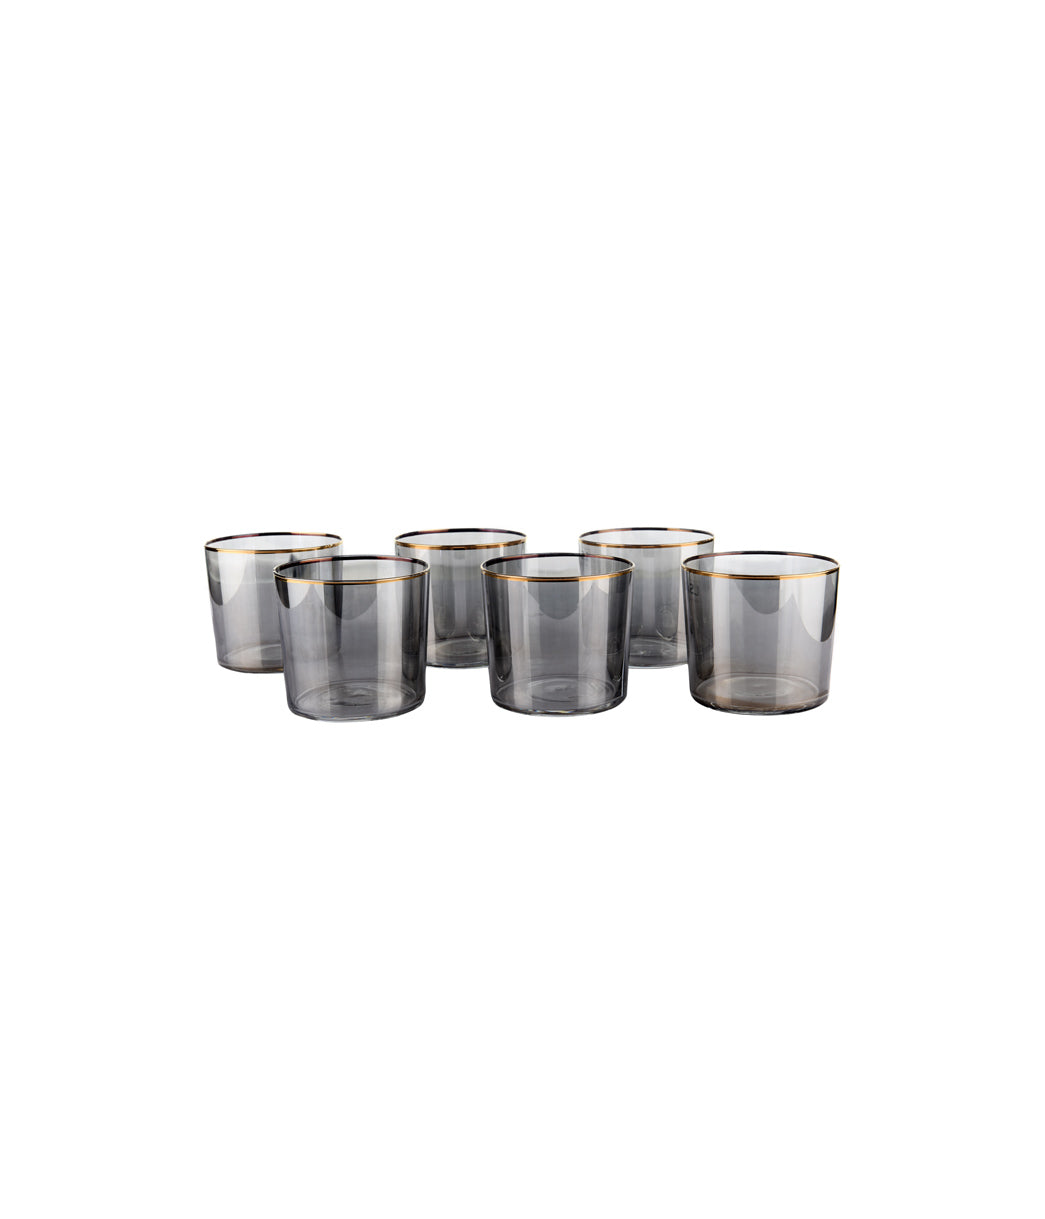 Licorice Sorbet Tumbler Set of 6